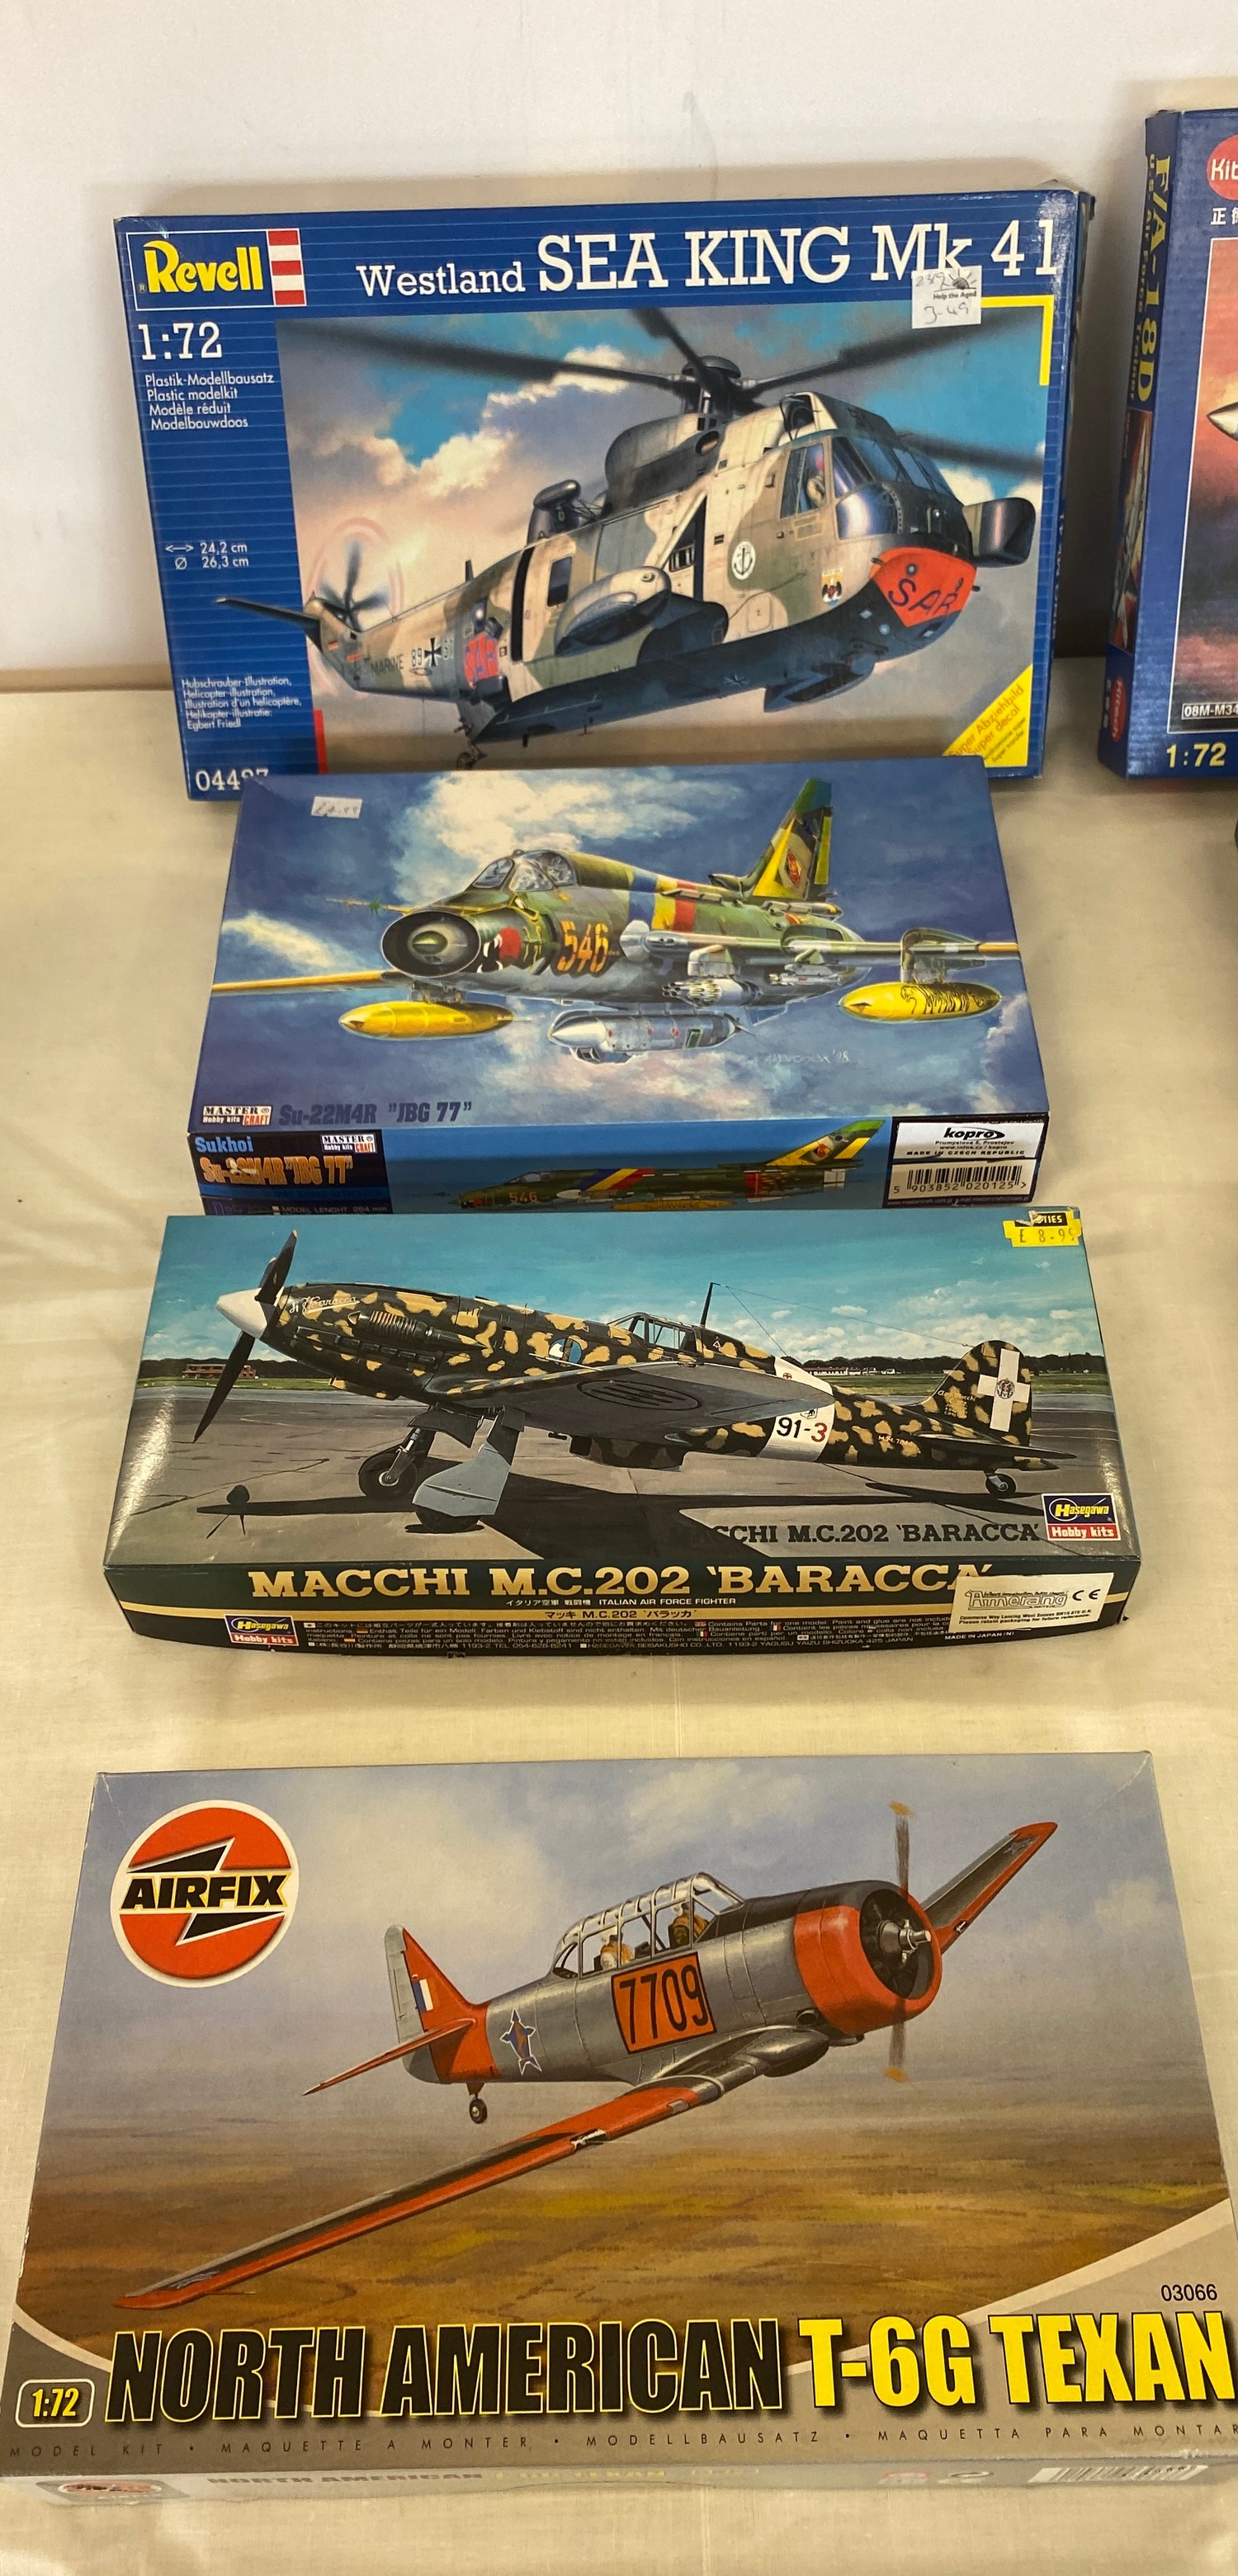 Selection of 8 boxed craft models to include, Revell Westland sea king, F/A 18D, Airfix Saab Tunnan, - Image 3 of 3